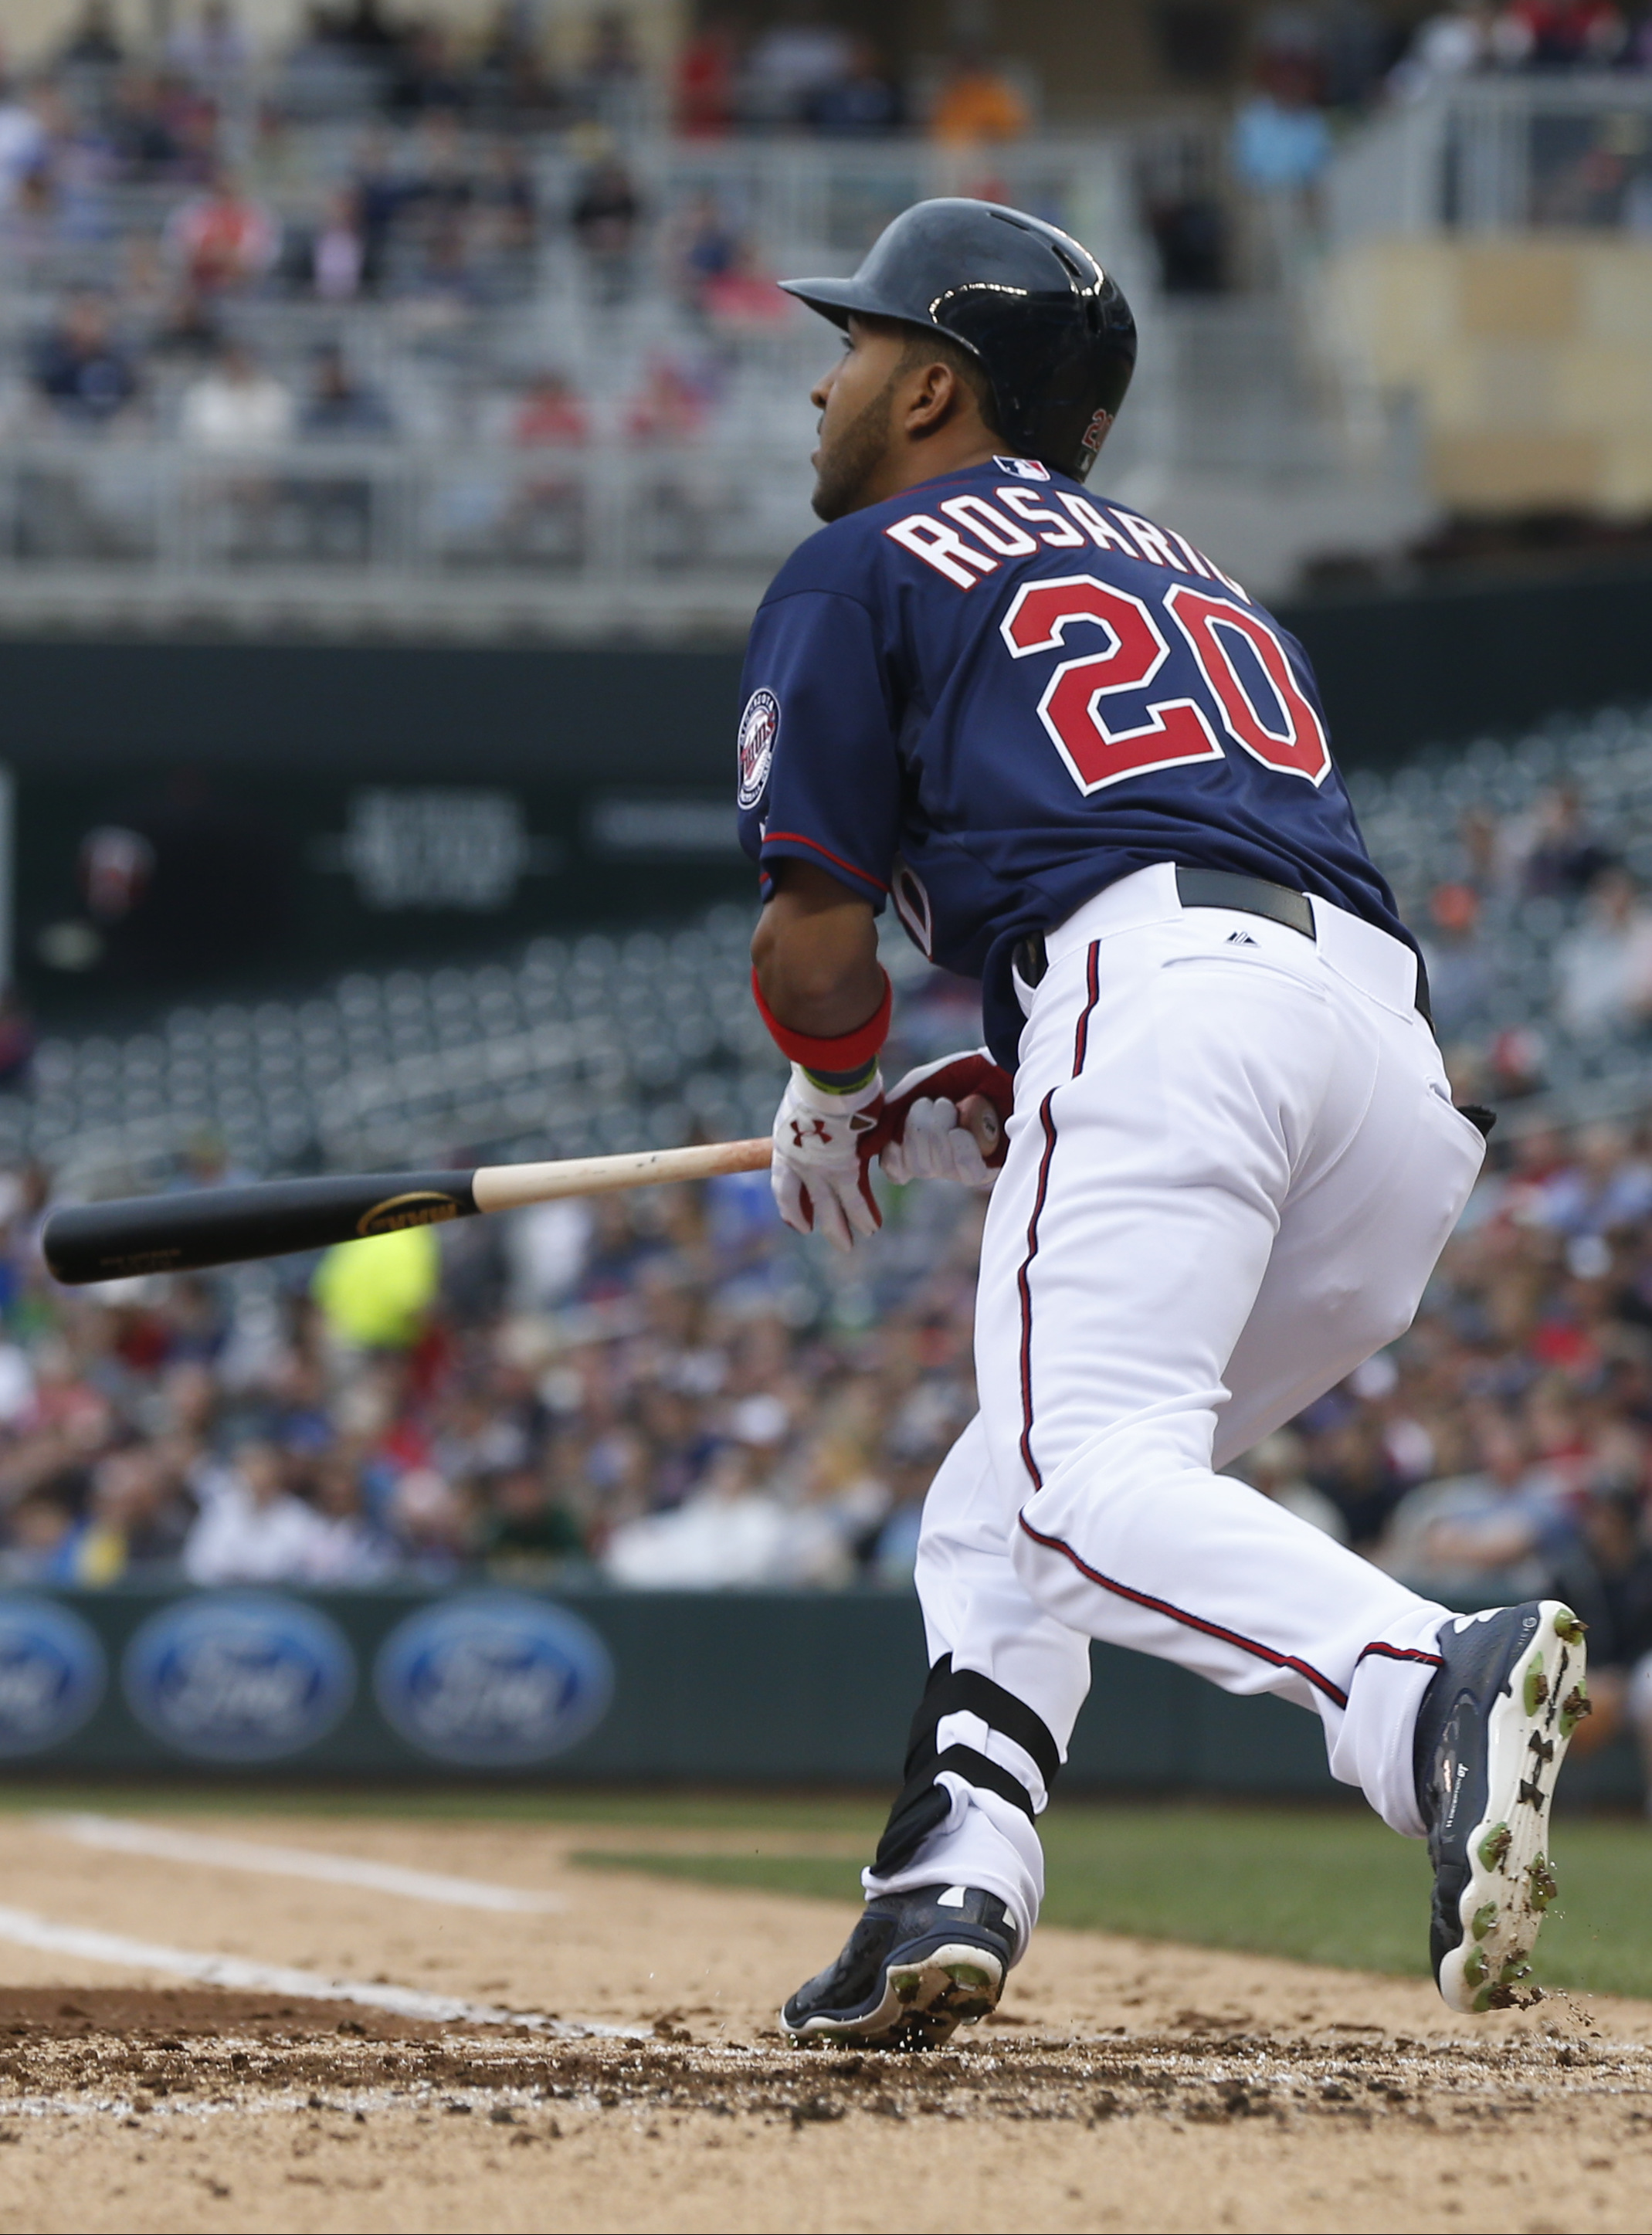 Minnesota Twins' Eddie Rosario watches his sacrifice fly off Oakland Athletics pitcher Drew Pomeranz in the third inning of a baseball game, Thursday, May 7, 2015, in Minneapolis. (AP Photo/Jim Mone)